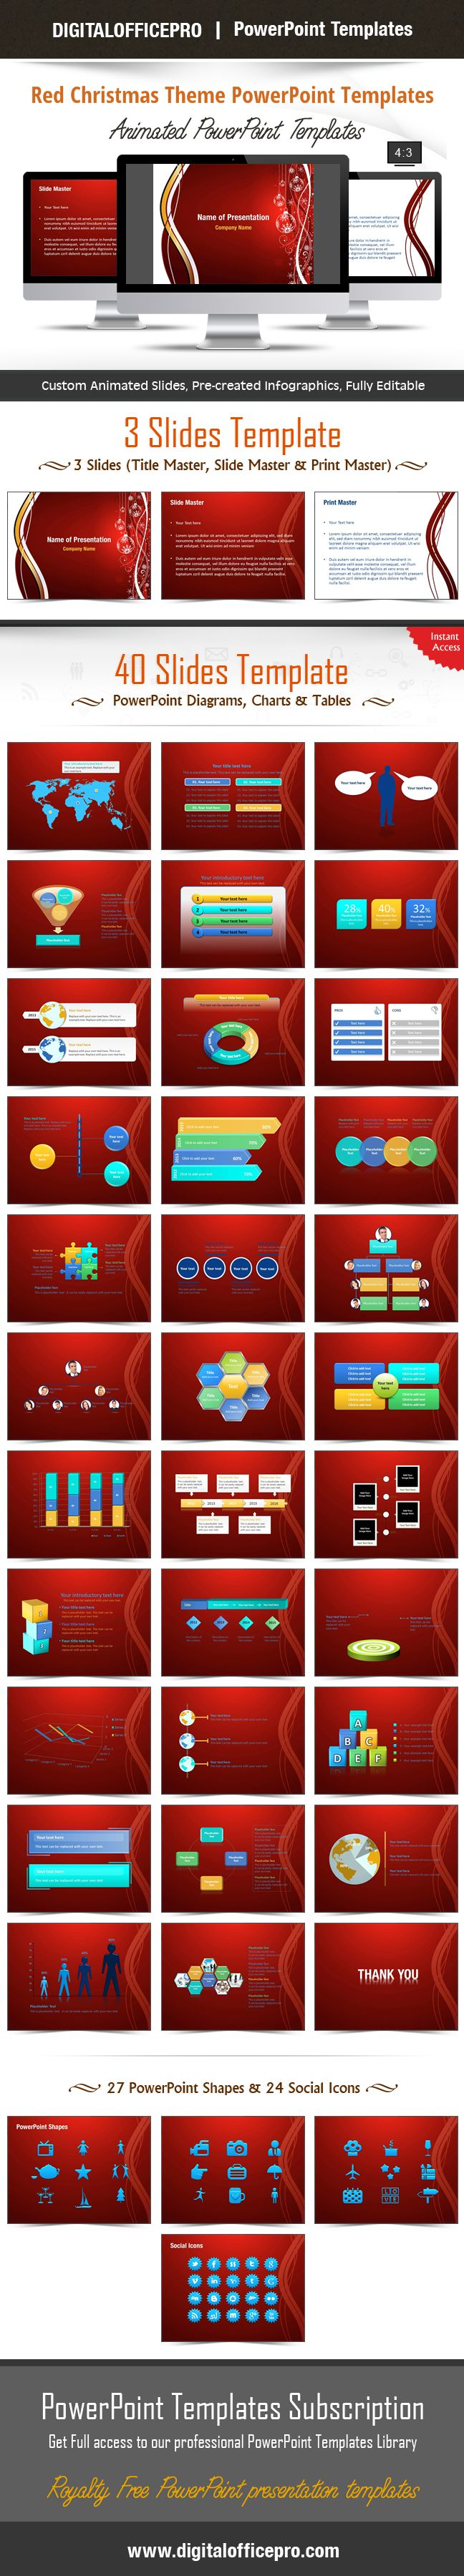 Oltre 20 migliori idee su download theme powerpoint su pinterest impress and engage your audience with red christmas theme powerpoint template and red christmas theme powerpoint toneelgroepblik Image collections